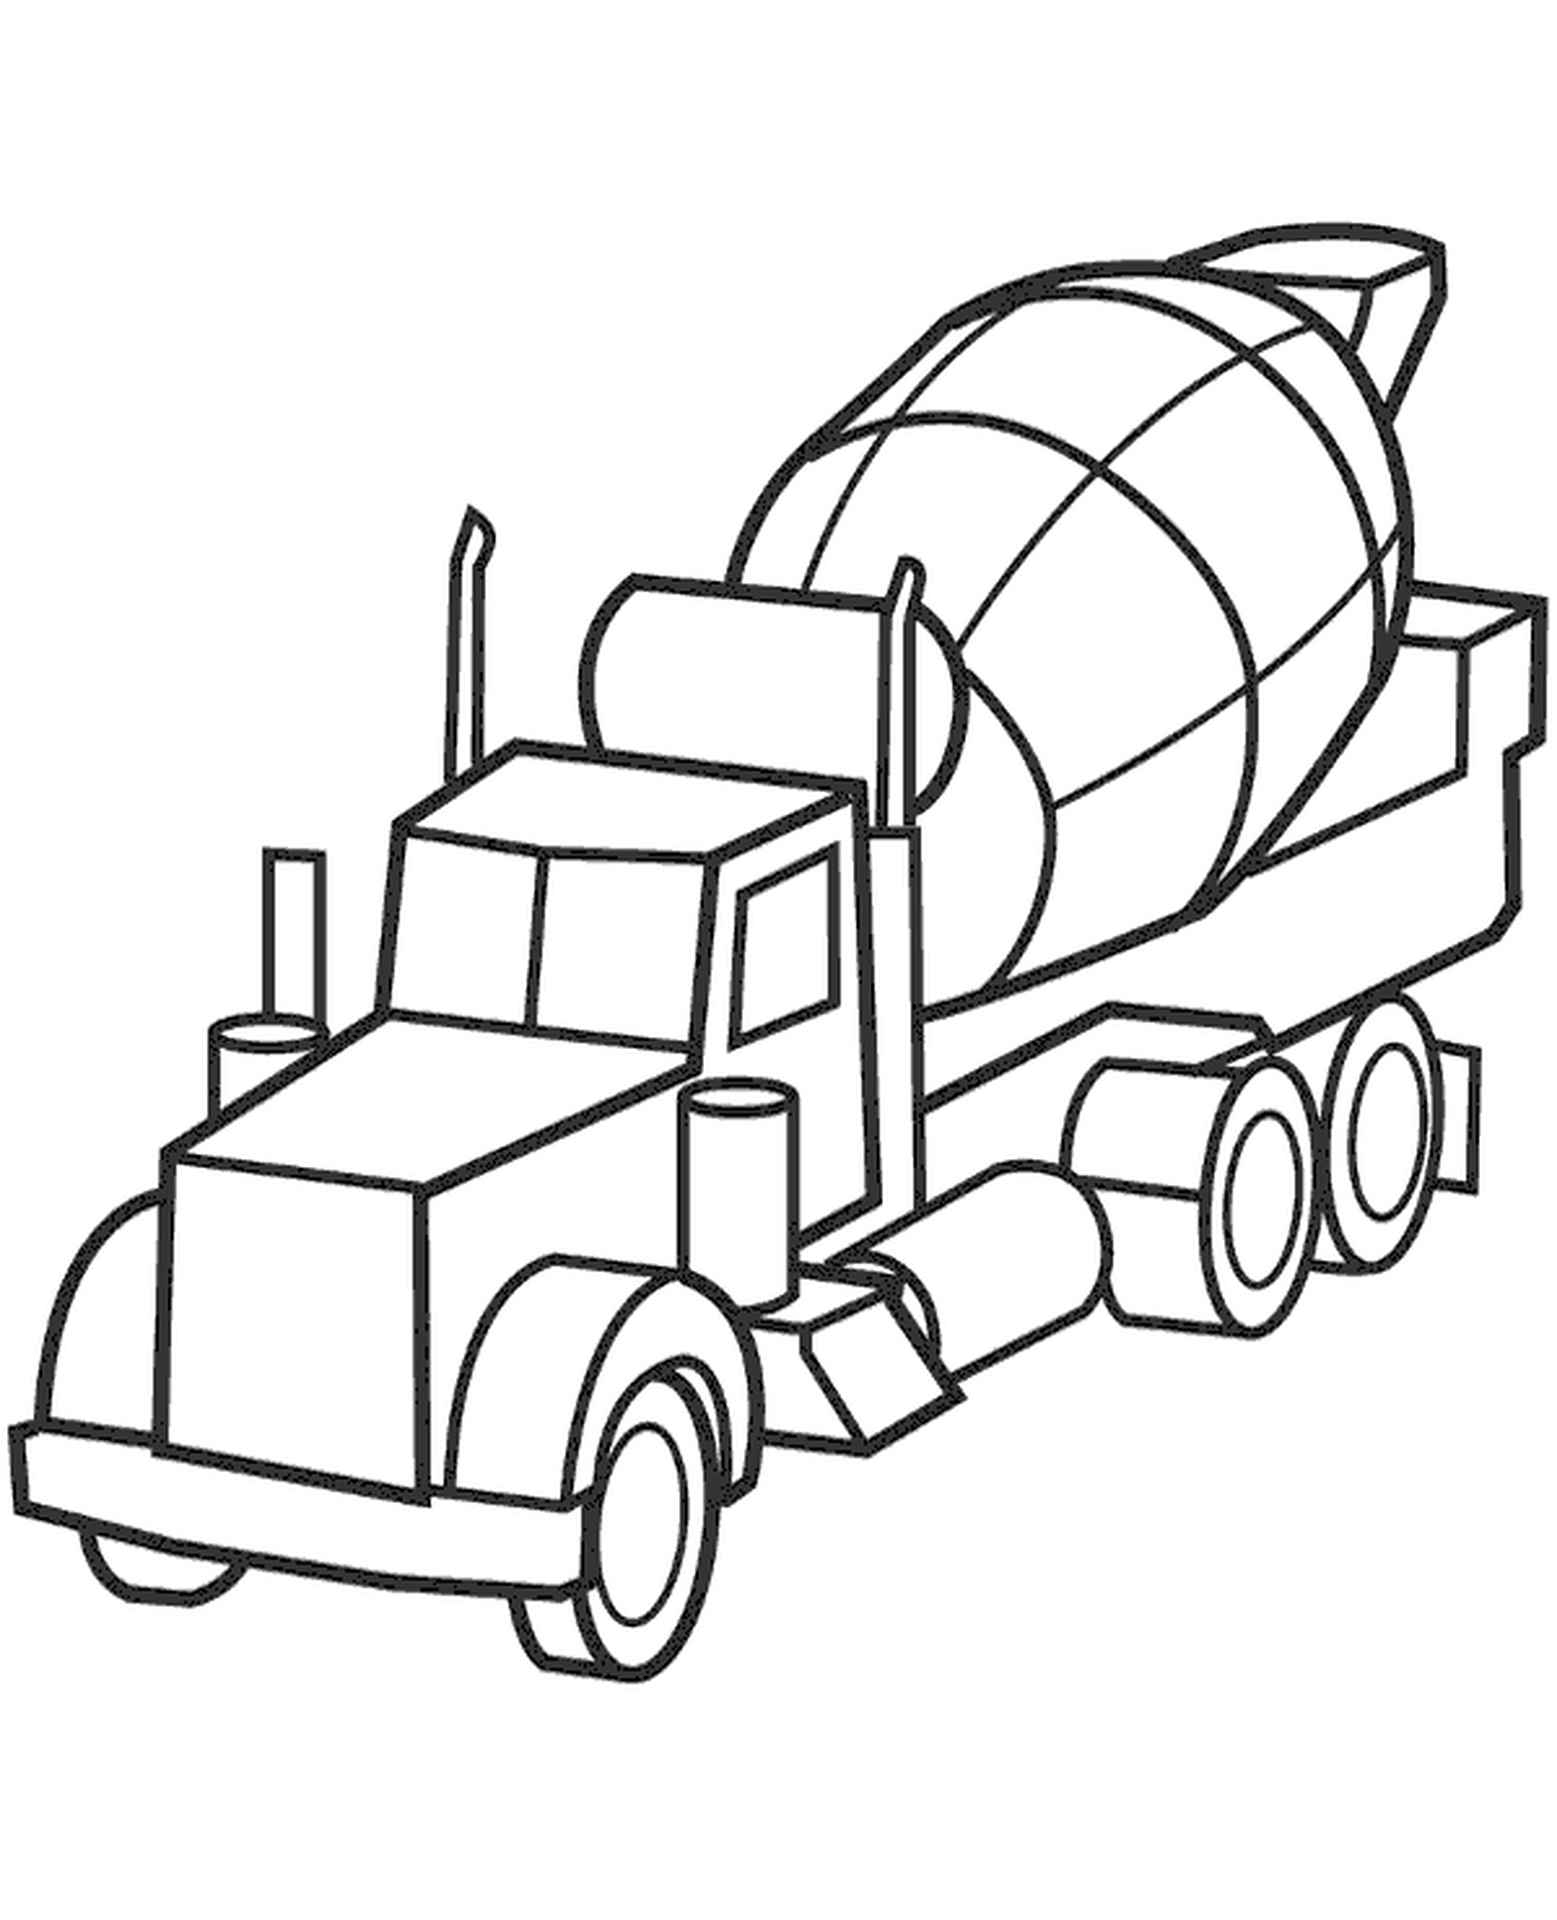 Concrete Mixer Coloring Page